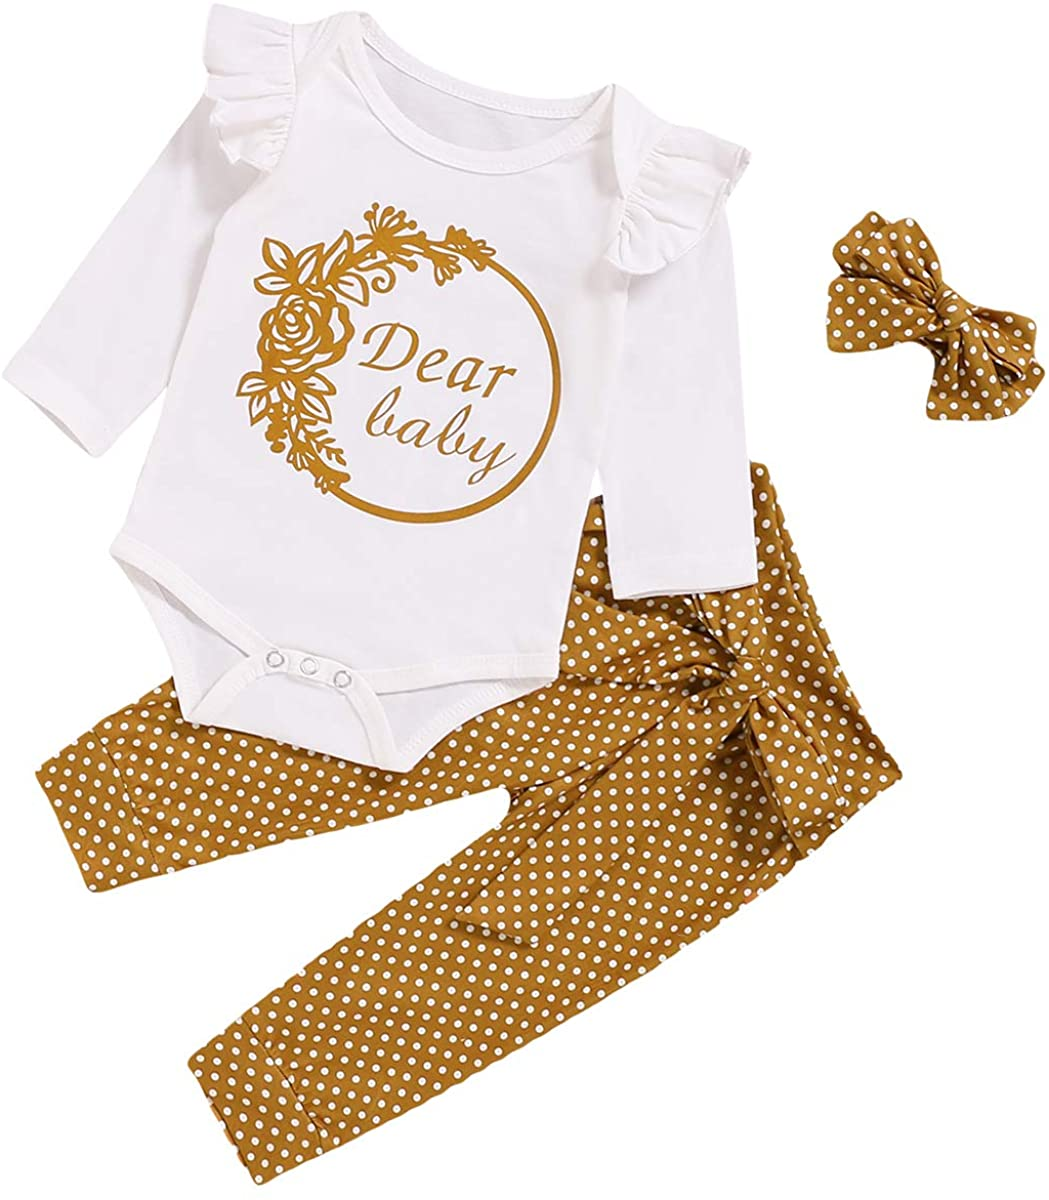 NCONCO Baby Clothes Outfits Set Romper + Polka Dotted Pants + Headband for 0-18M Baby Girls